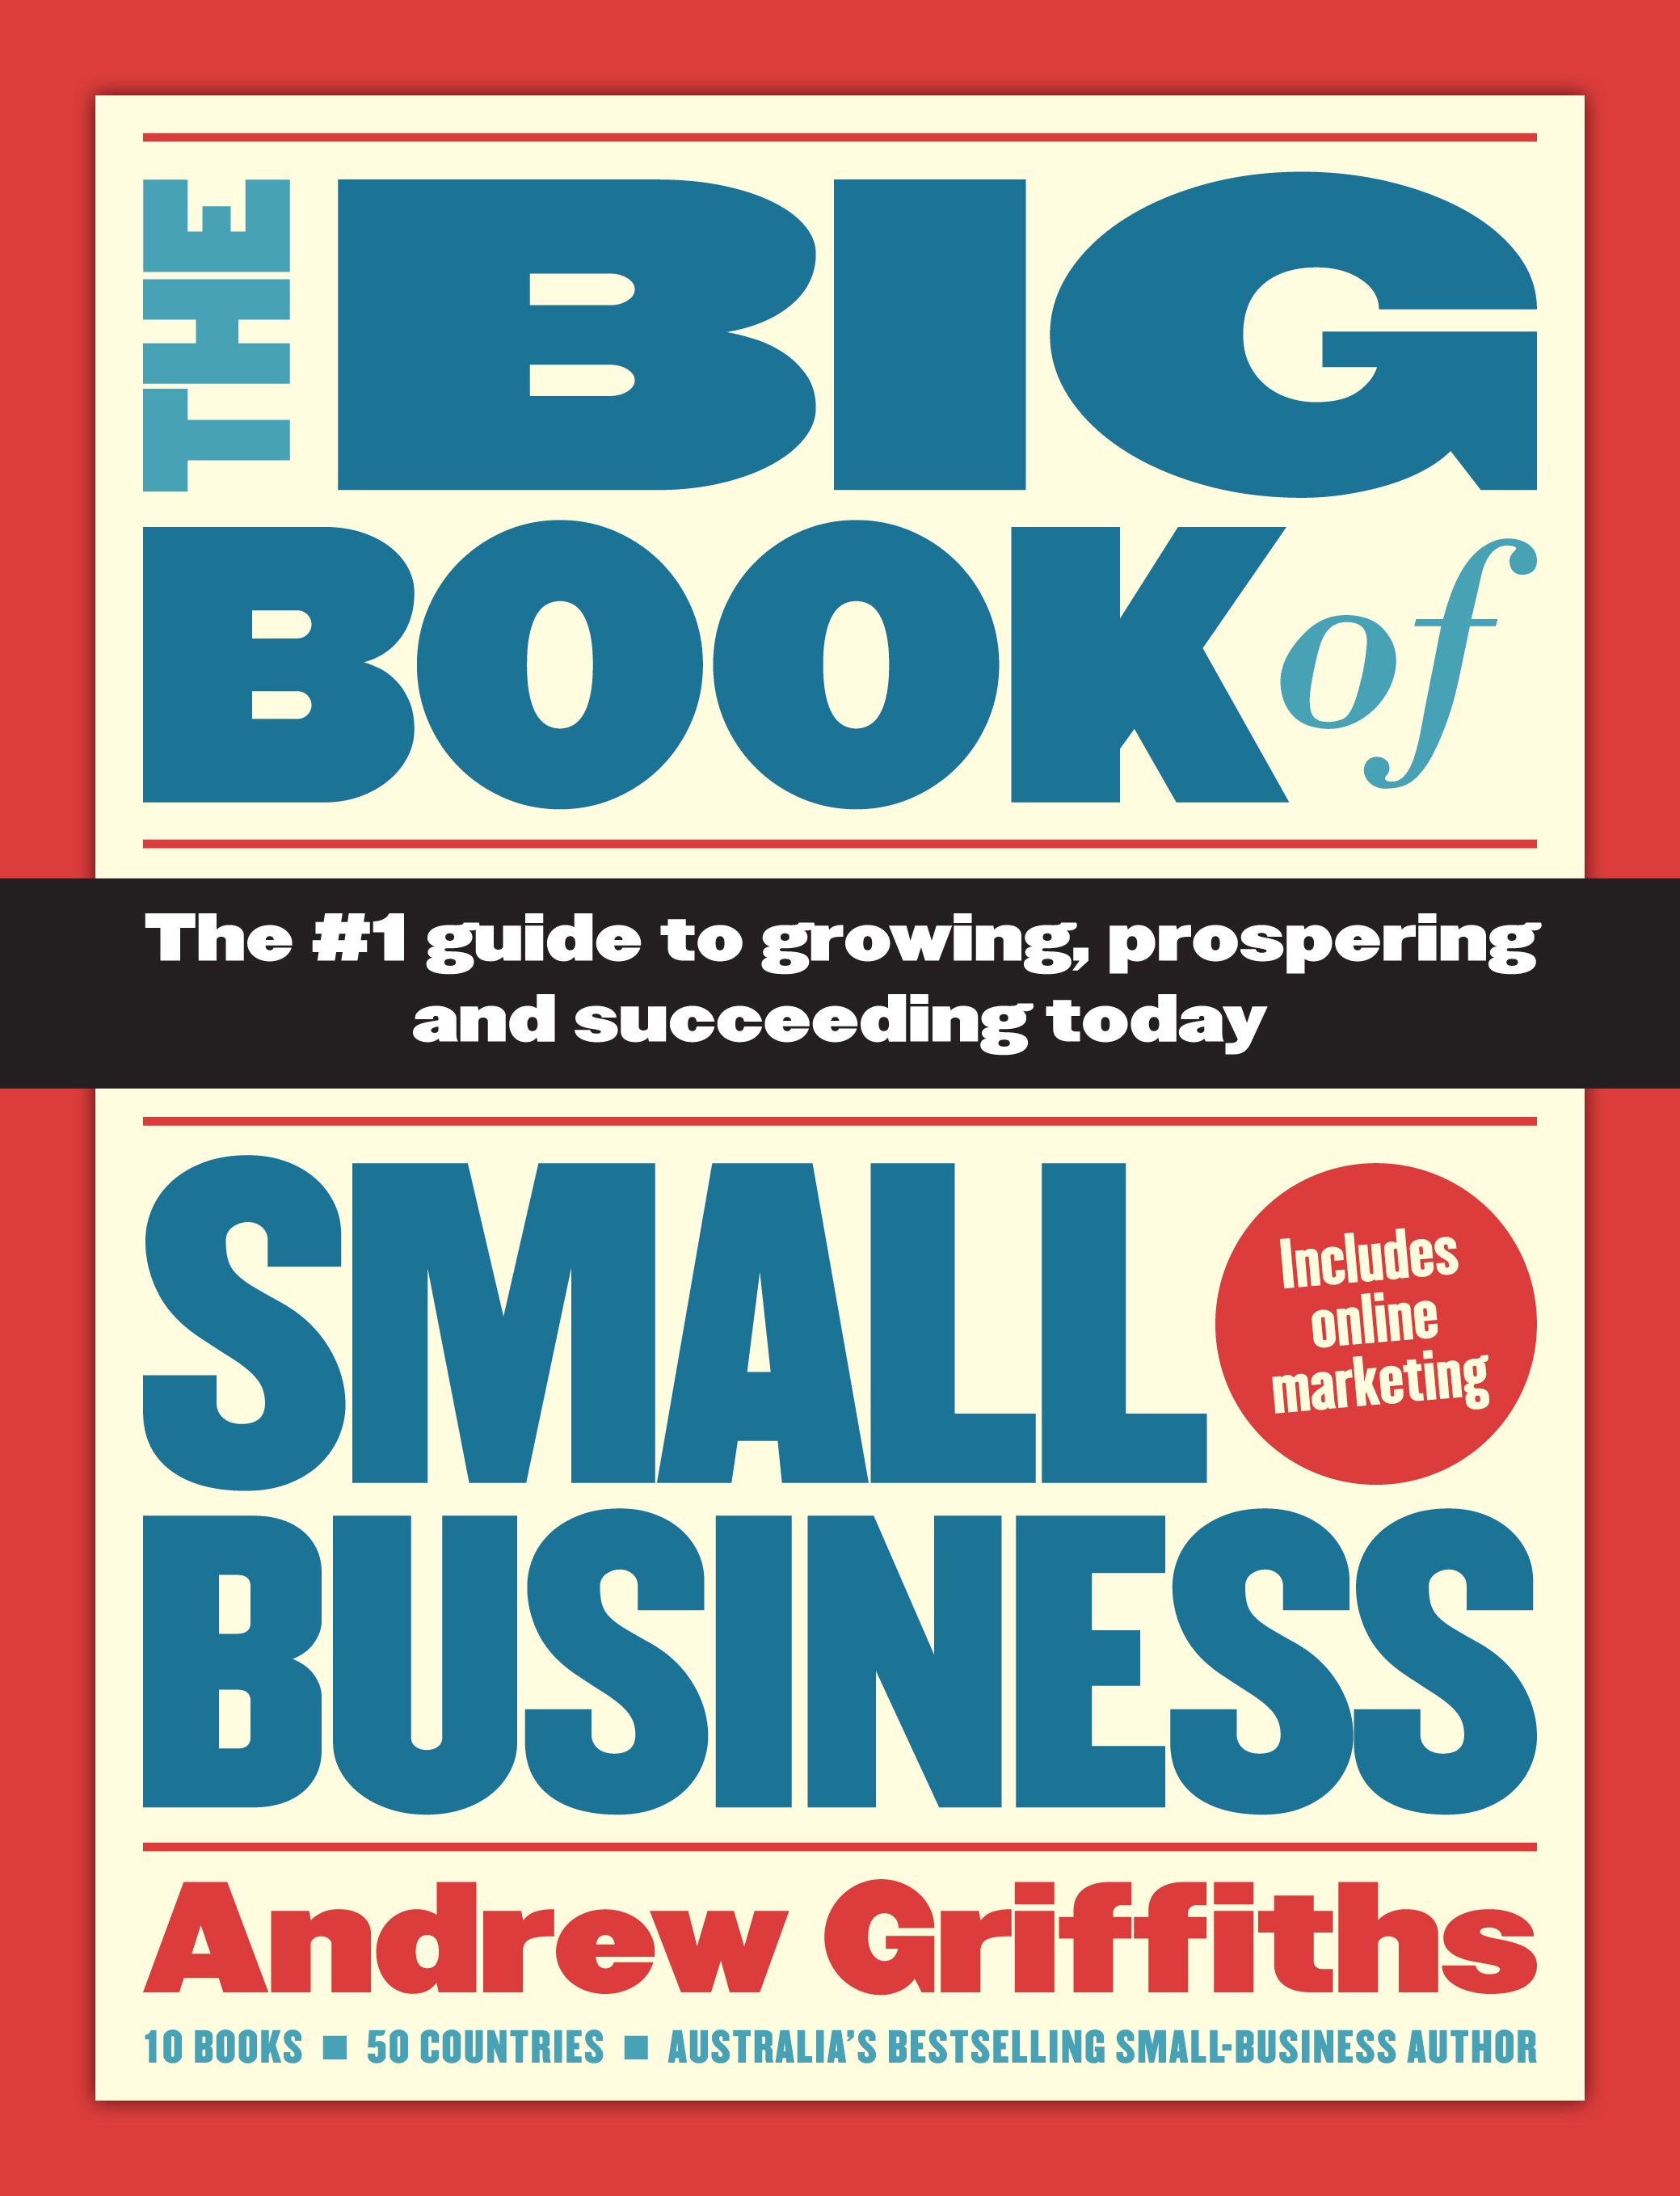 Business Book Cover : The big book of small business heads to china andrew